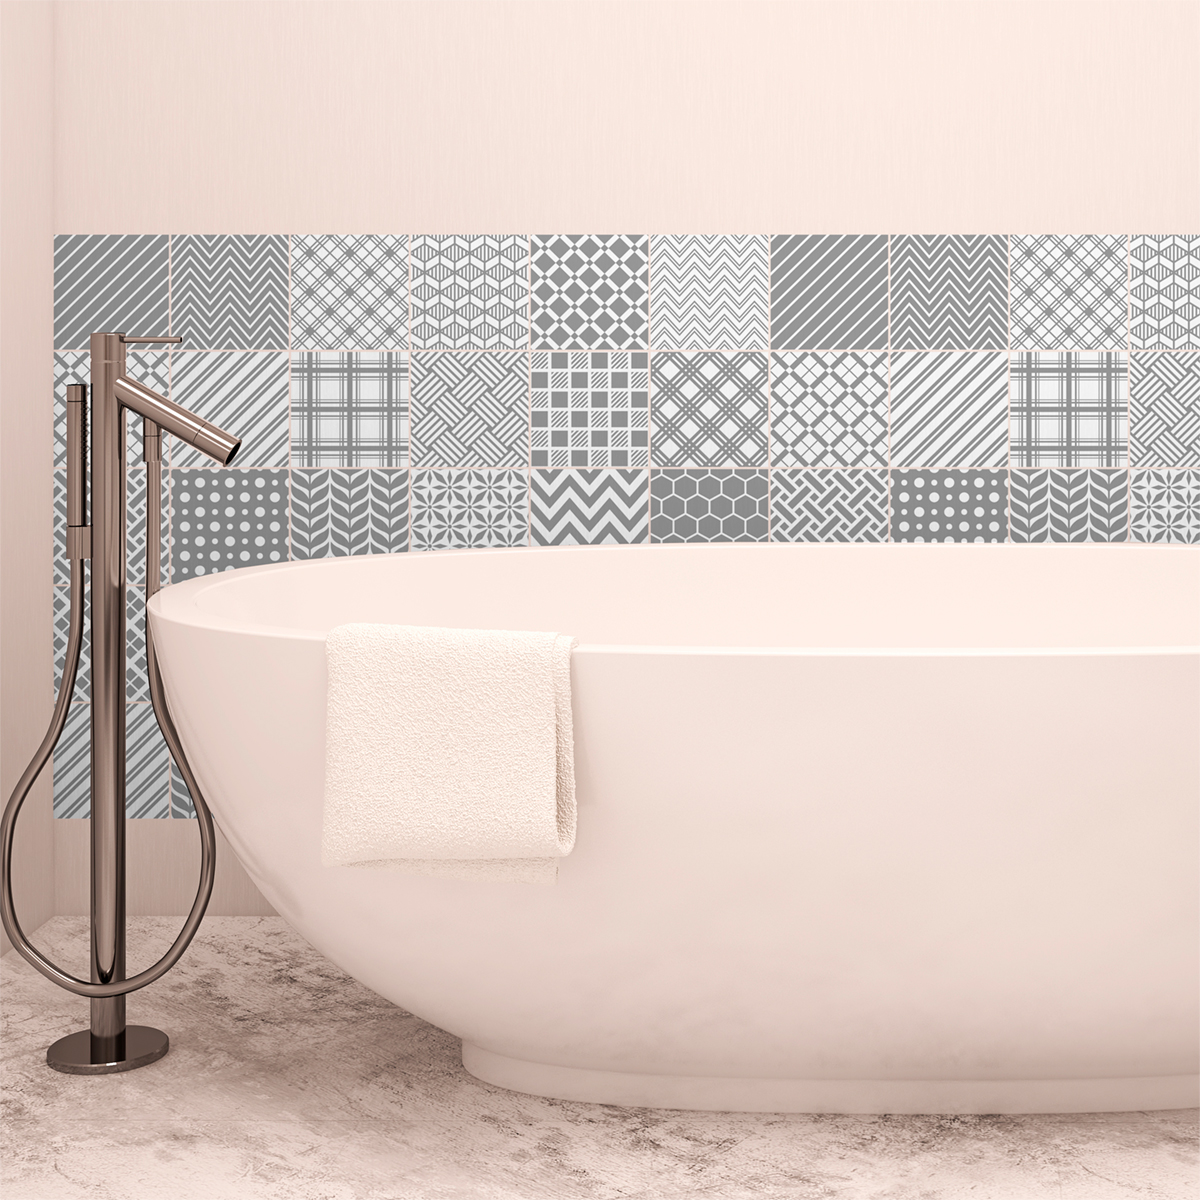 30 stickers carrelages scandinave goteborg salle de bain for Carrelage salle de bain scandinave